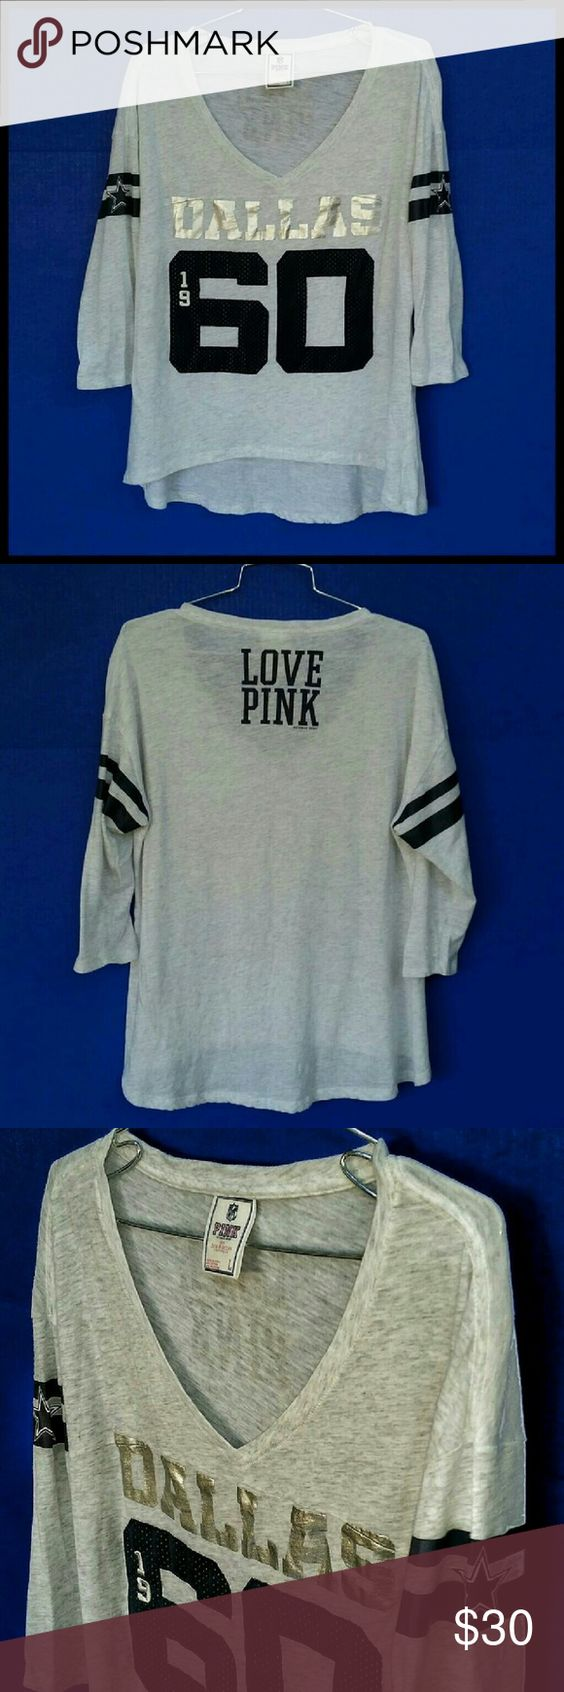 Victoria's Secret Pink Dallas Cowboys T-Shirt Love Pink Heather grey Dallas Cowboys T-Shirt w/3/4 length sleeves. Great condition. Victoria's Secret Tops